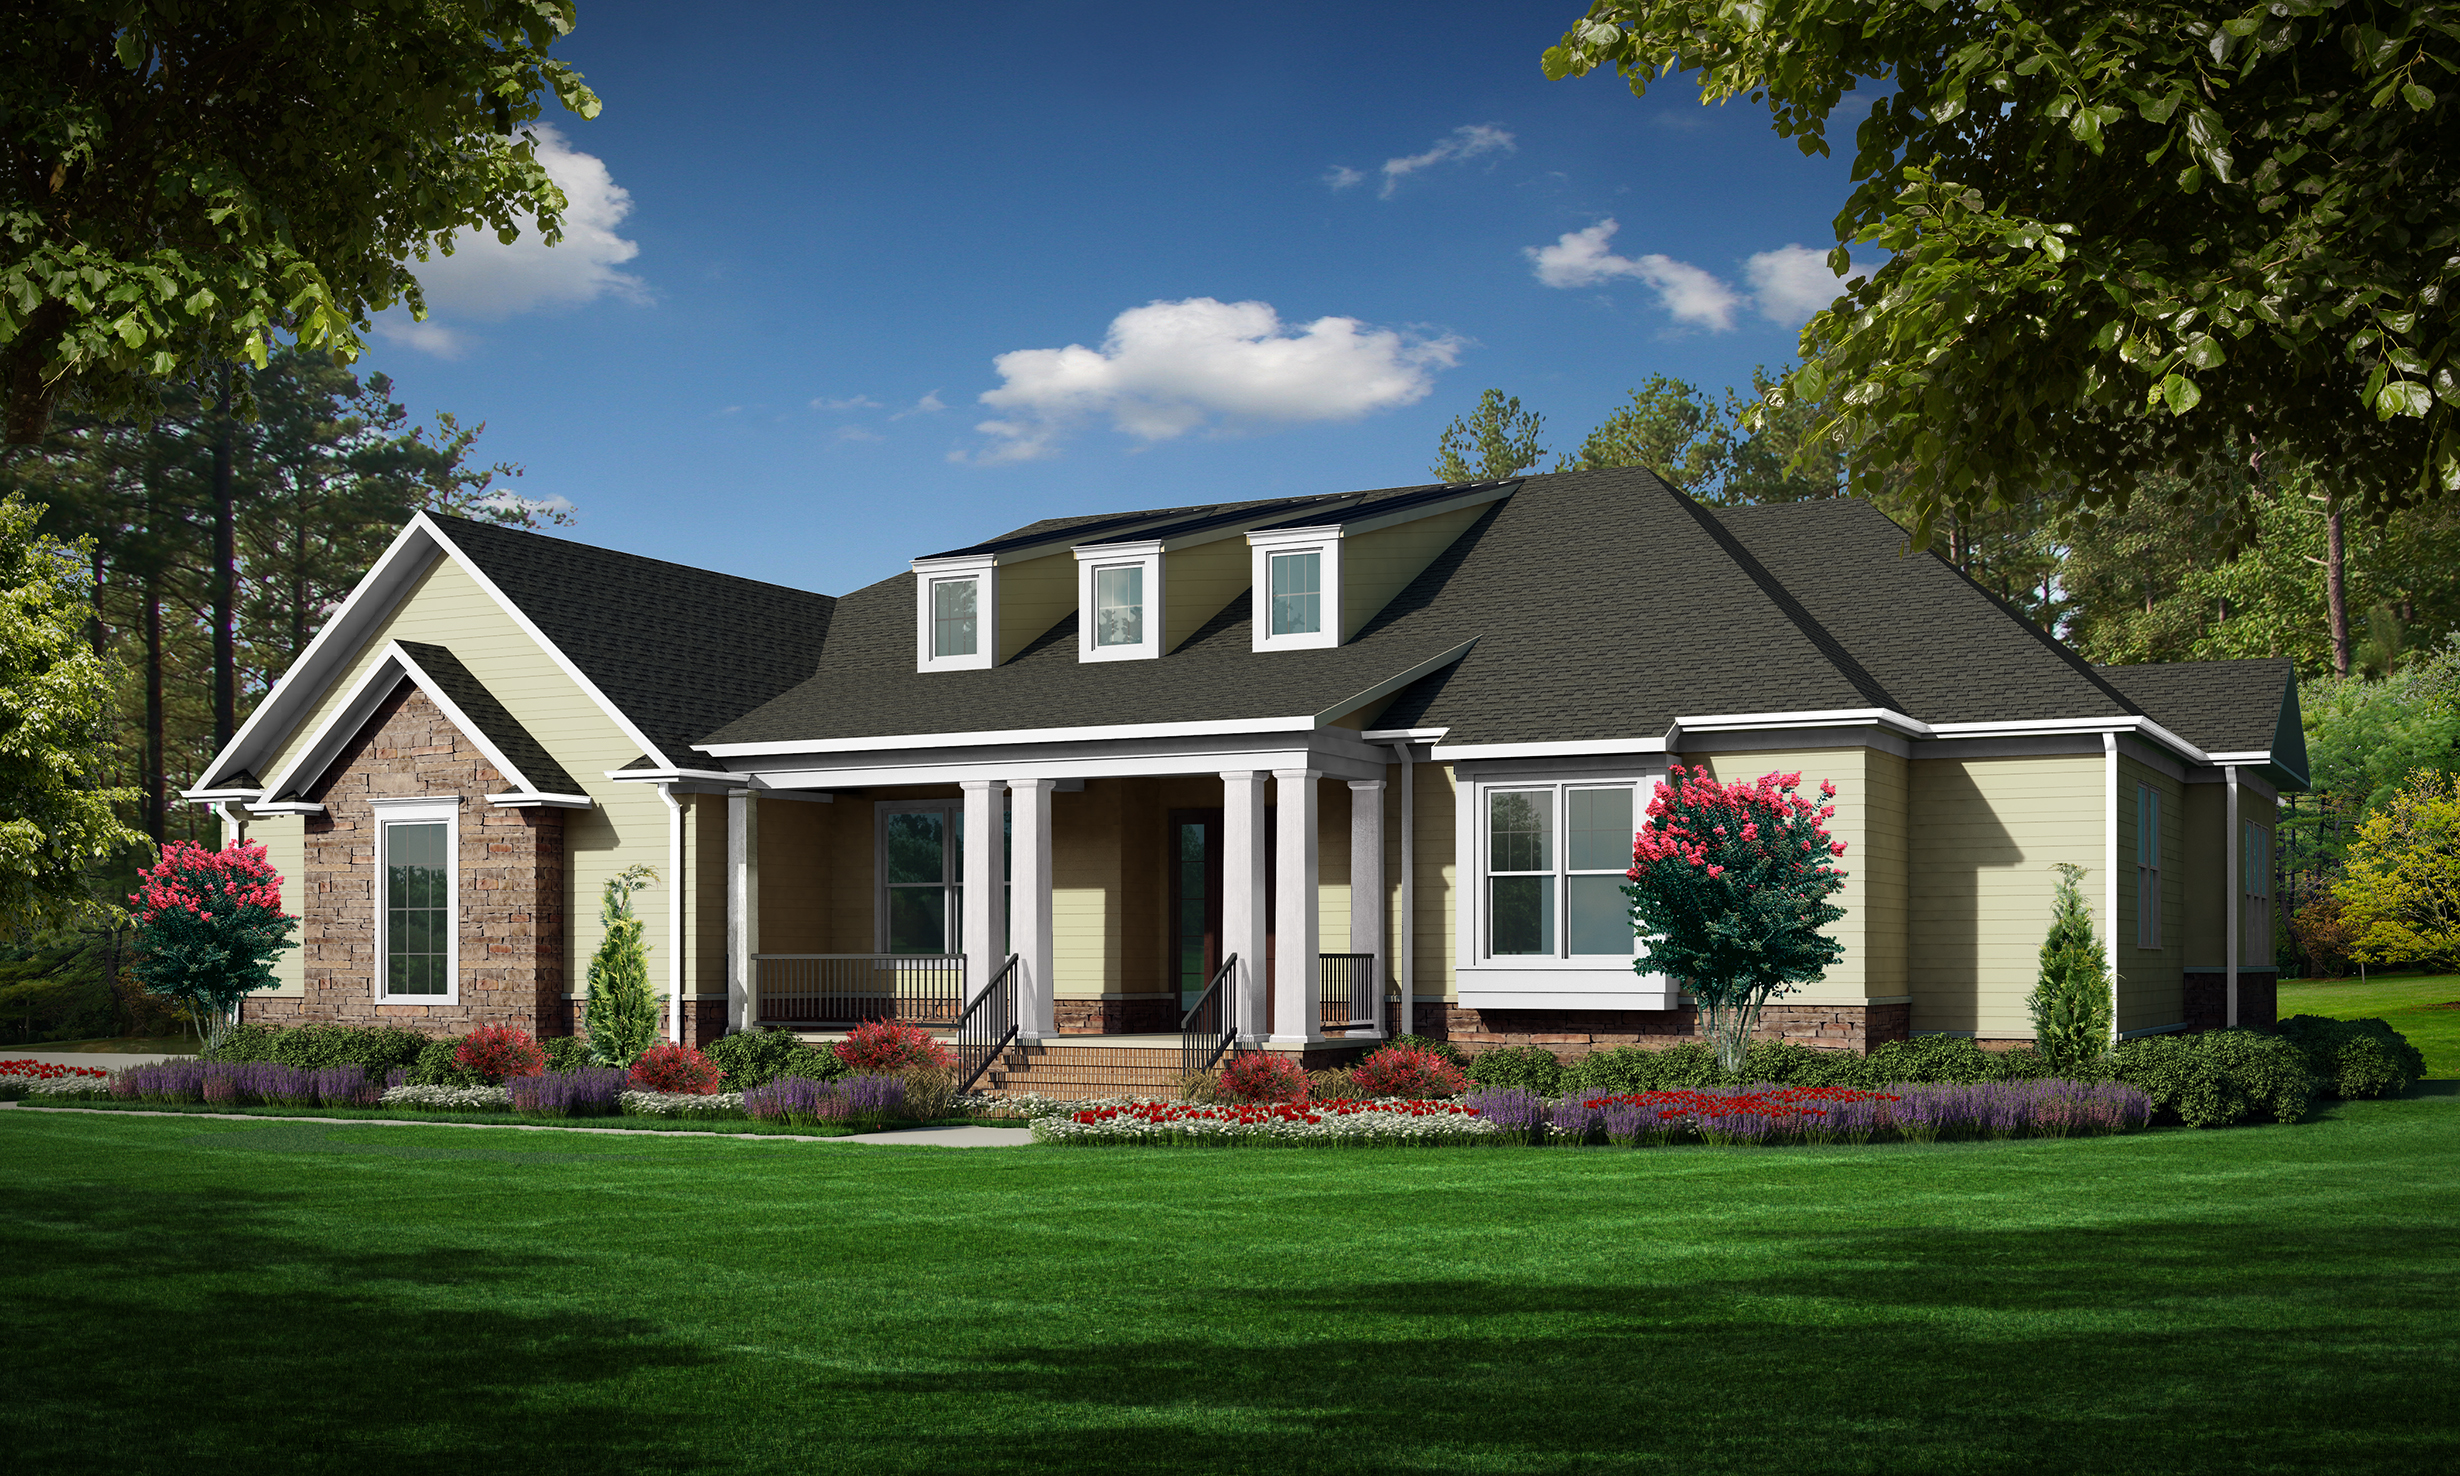 """Option B (Siding)  Total SF 5033 sq. ft. Total SF heated 3356 sq. ft. Bedrooms 4 Bathrooms 3.5 Width: 78'-0"""" Depth: 83'-0"""" Attached three-car garage Bonus Room Rear covered porch Front covered porch"""